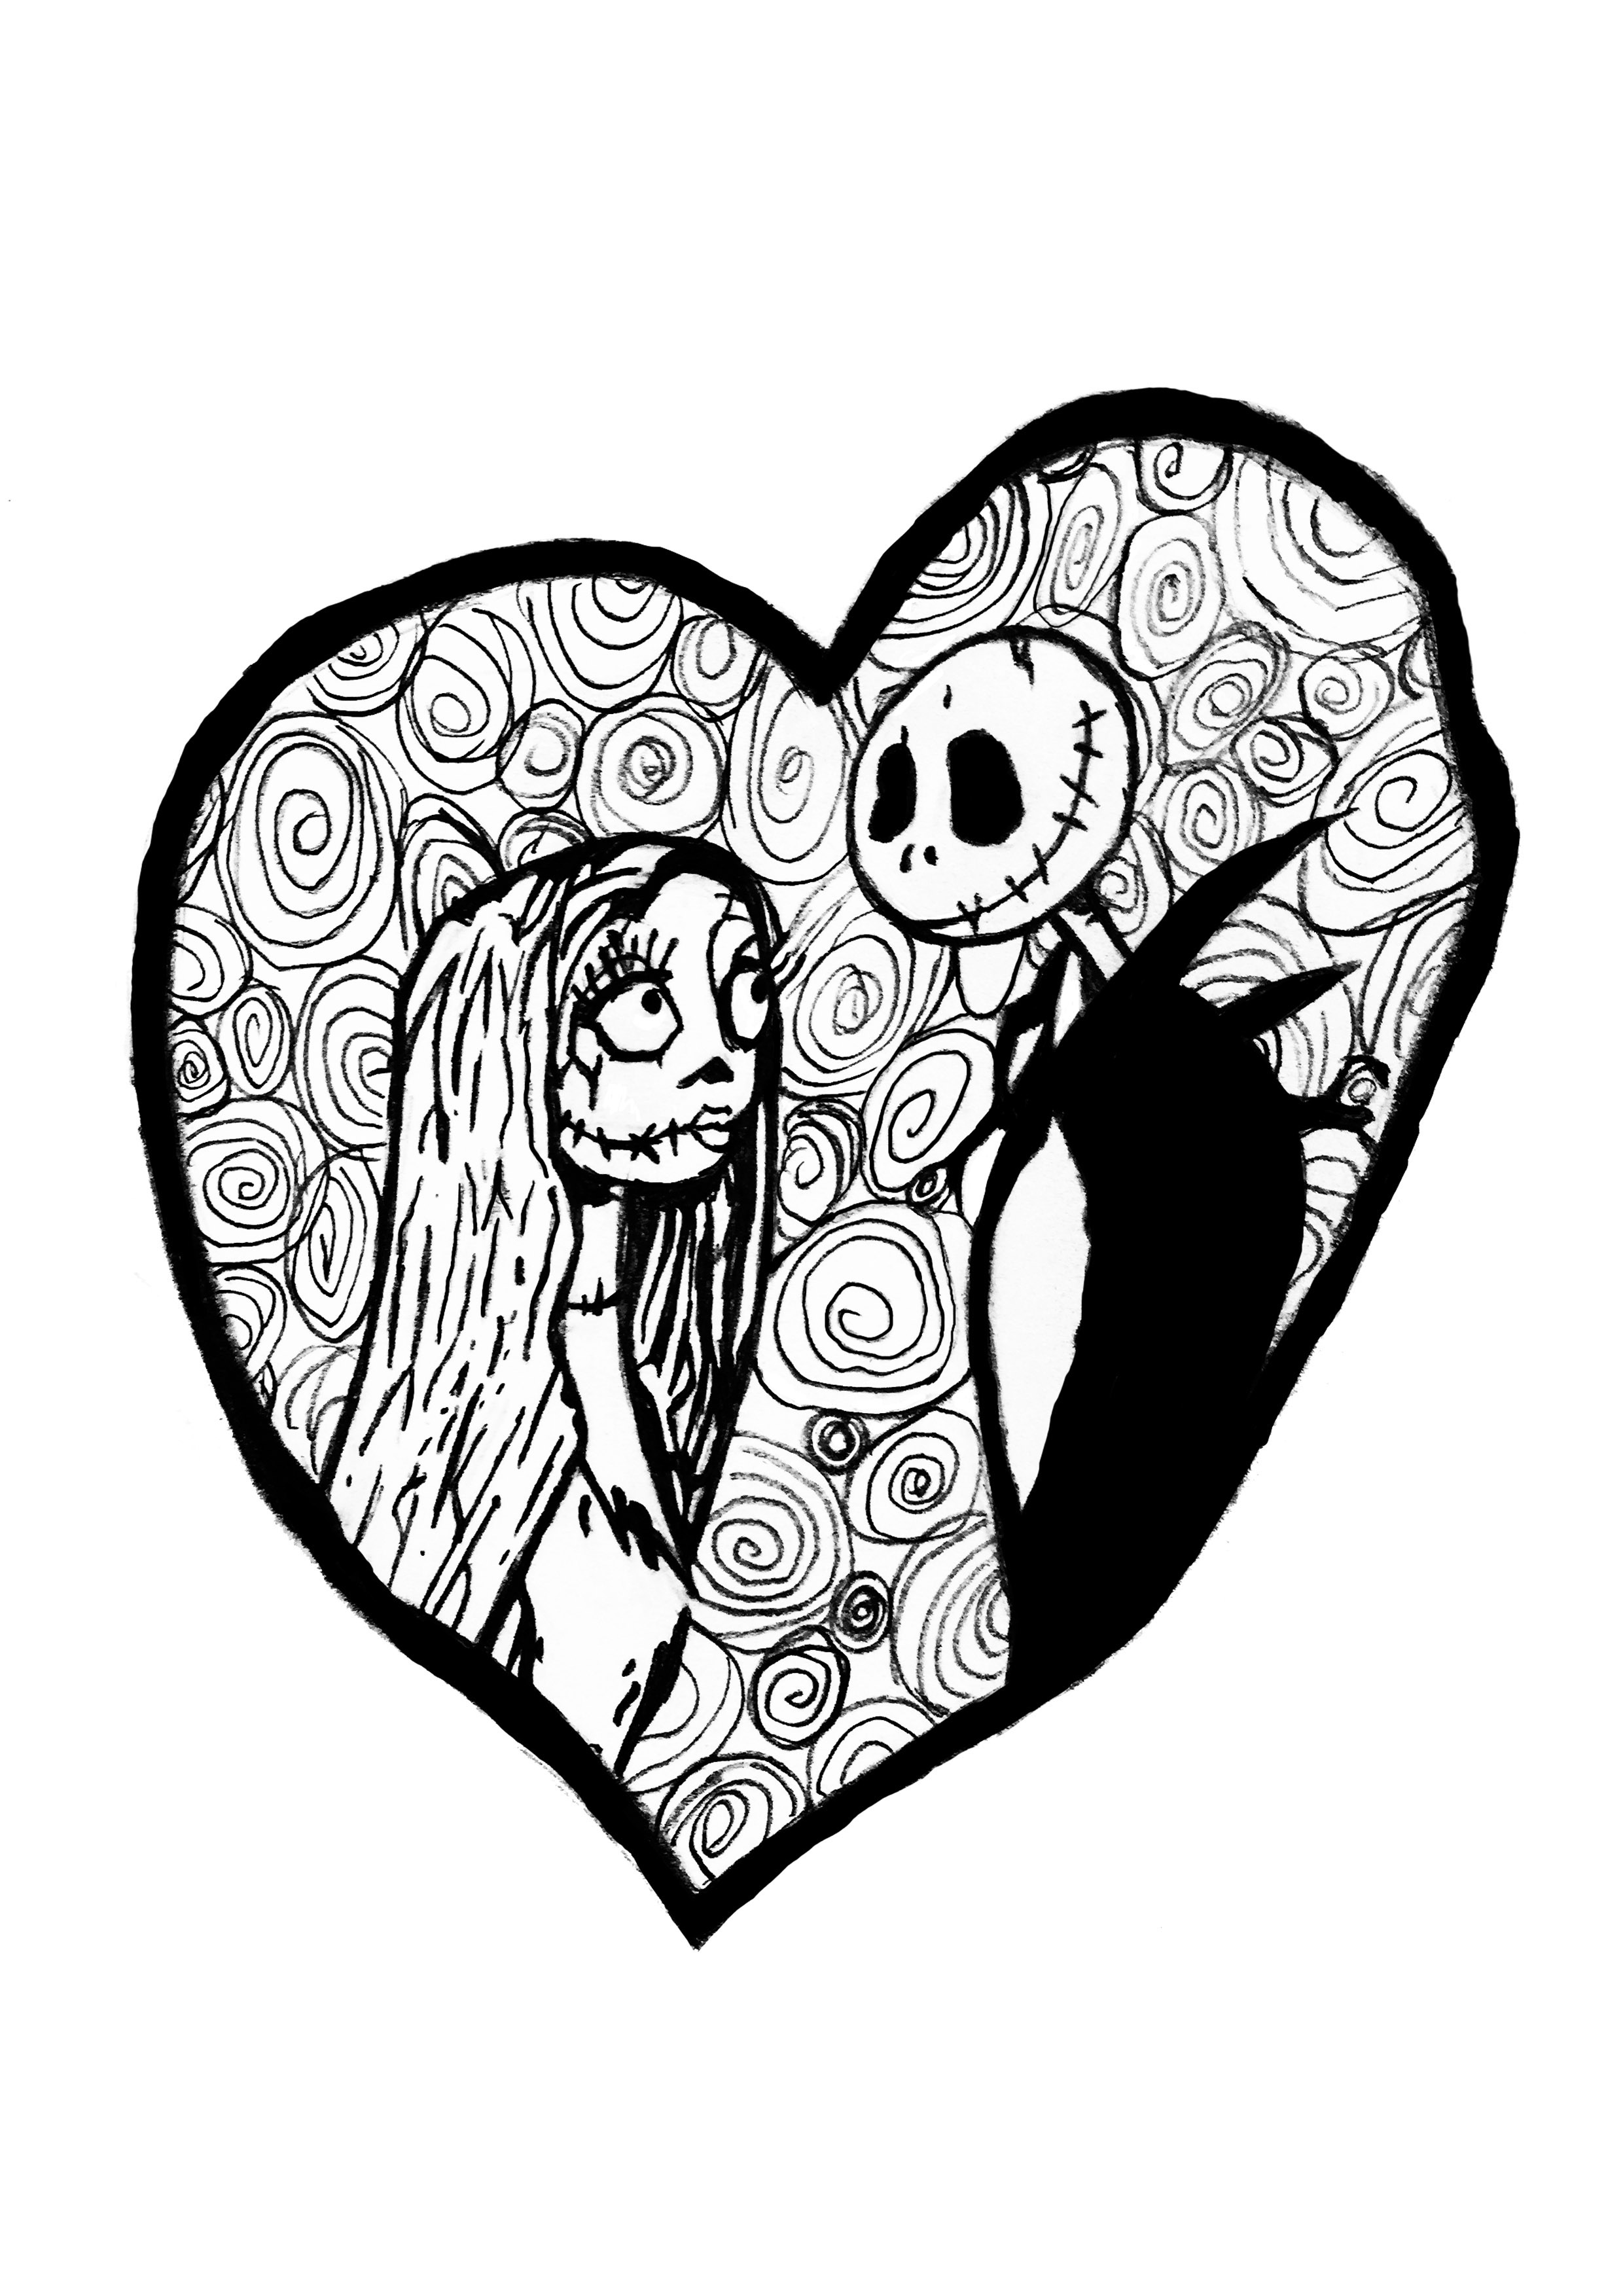 jack sally from the movie tim burtons the nightmare before christmas together in a coloring page for the valentines day